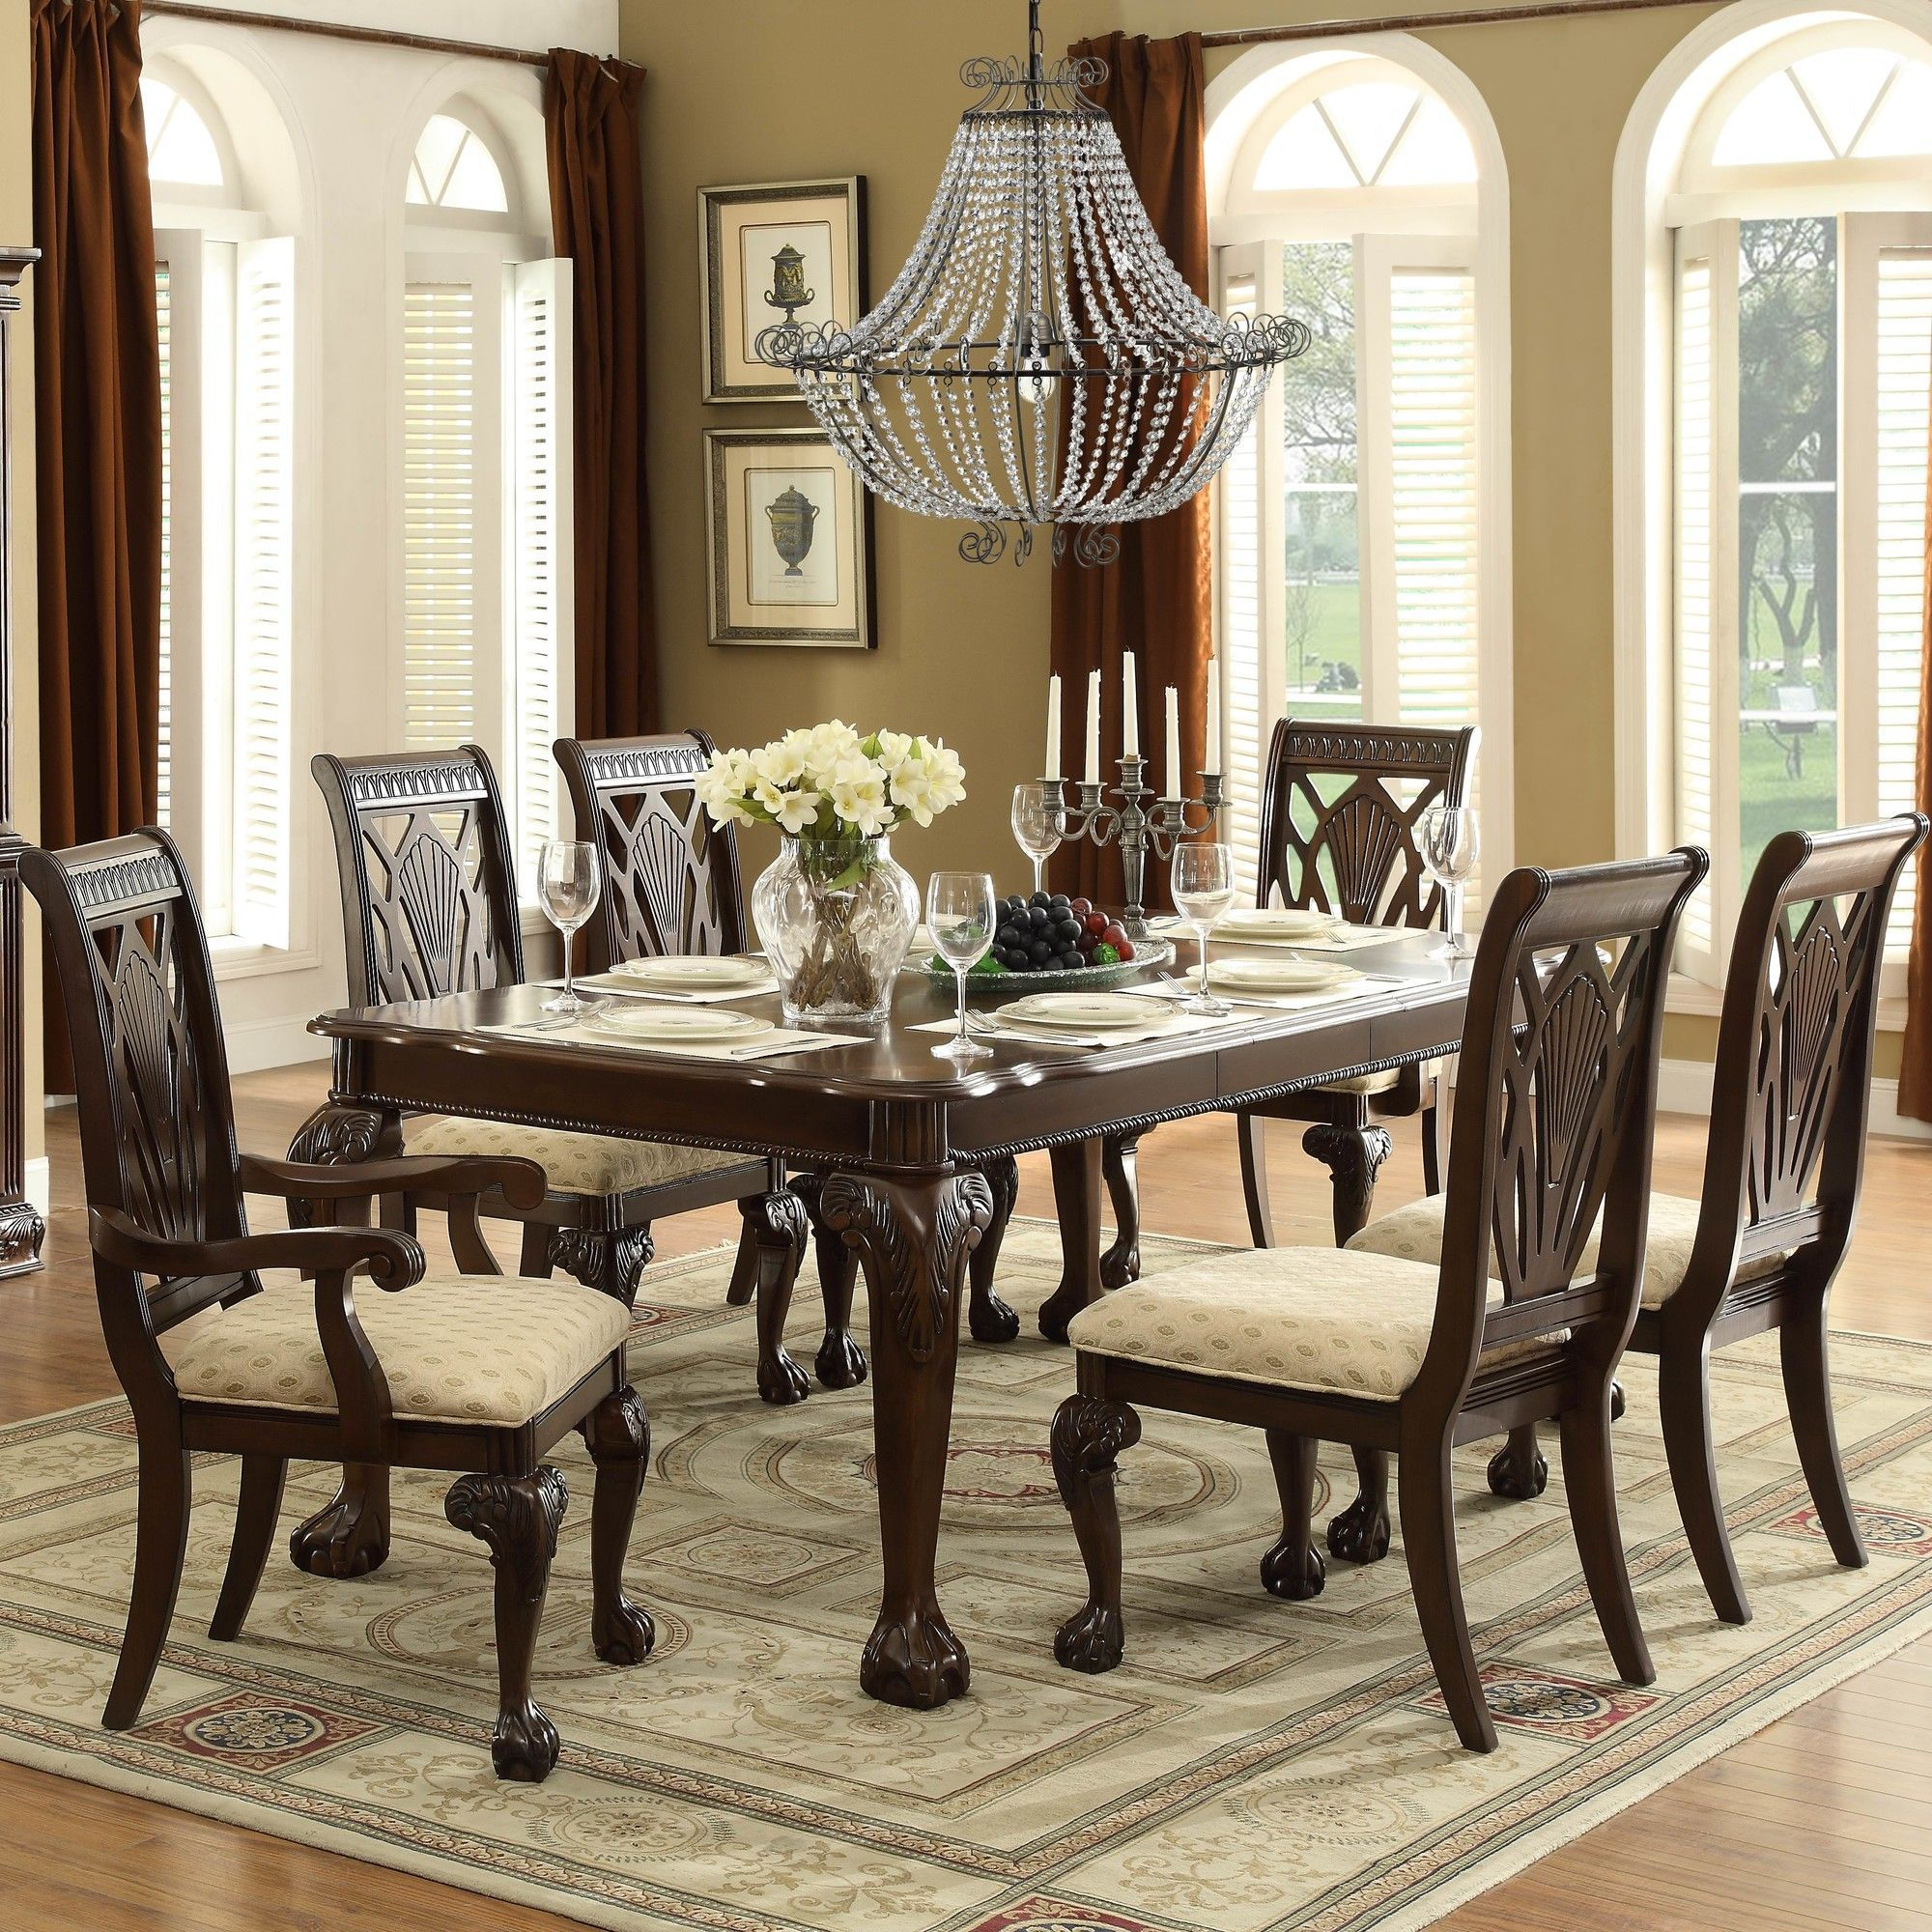 Adams Dining Table Traditional Dining Tables Dining Room Sets